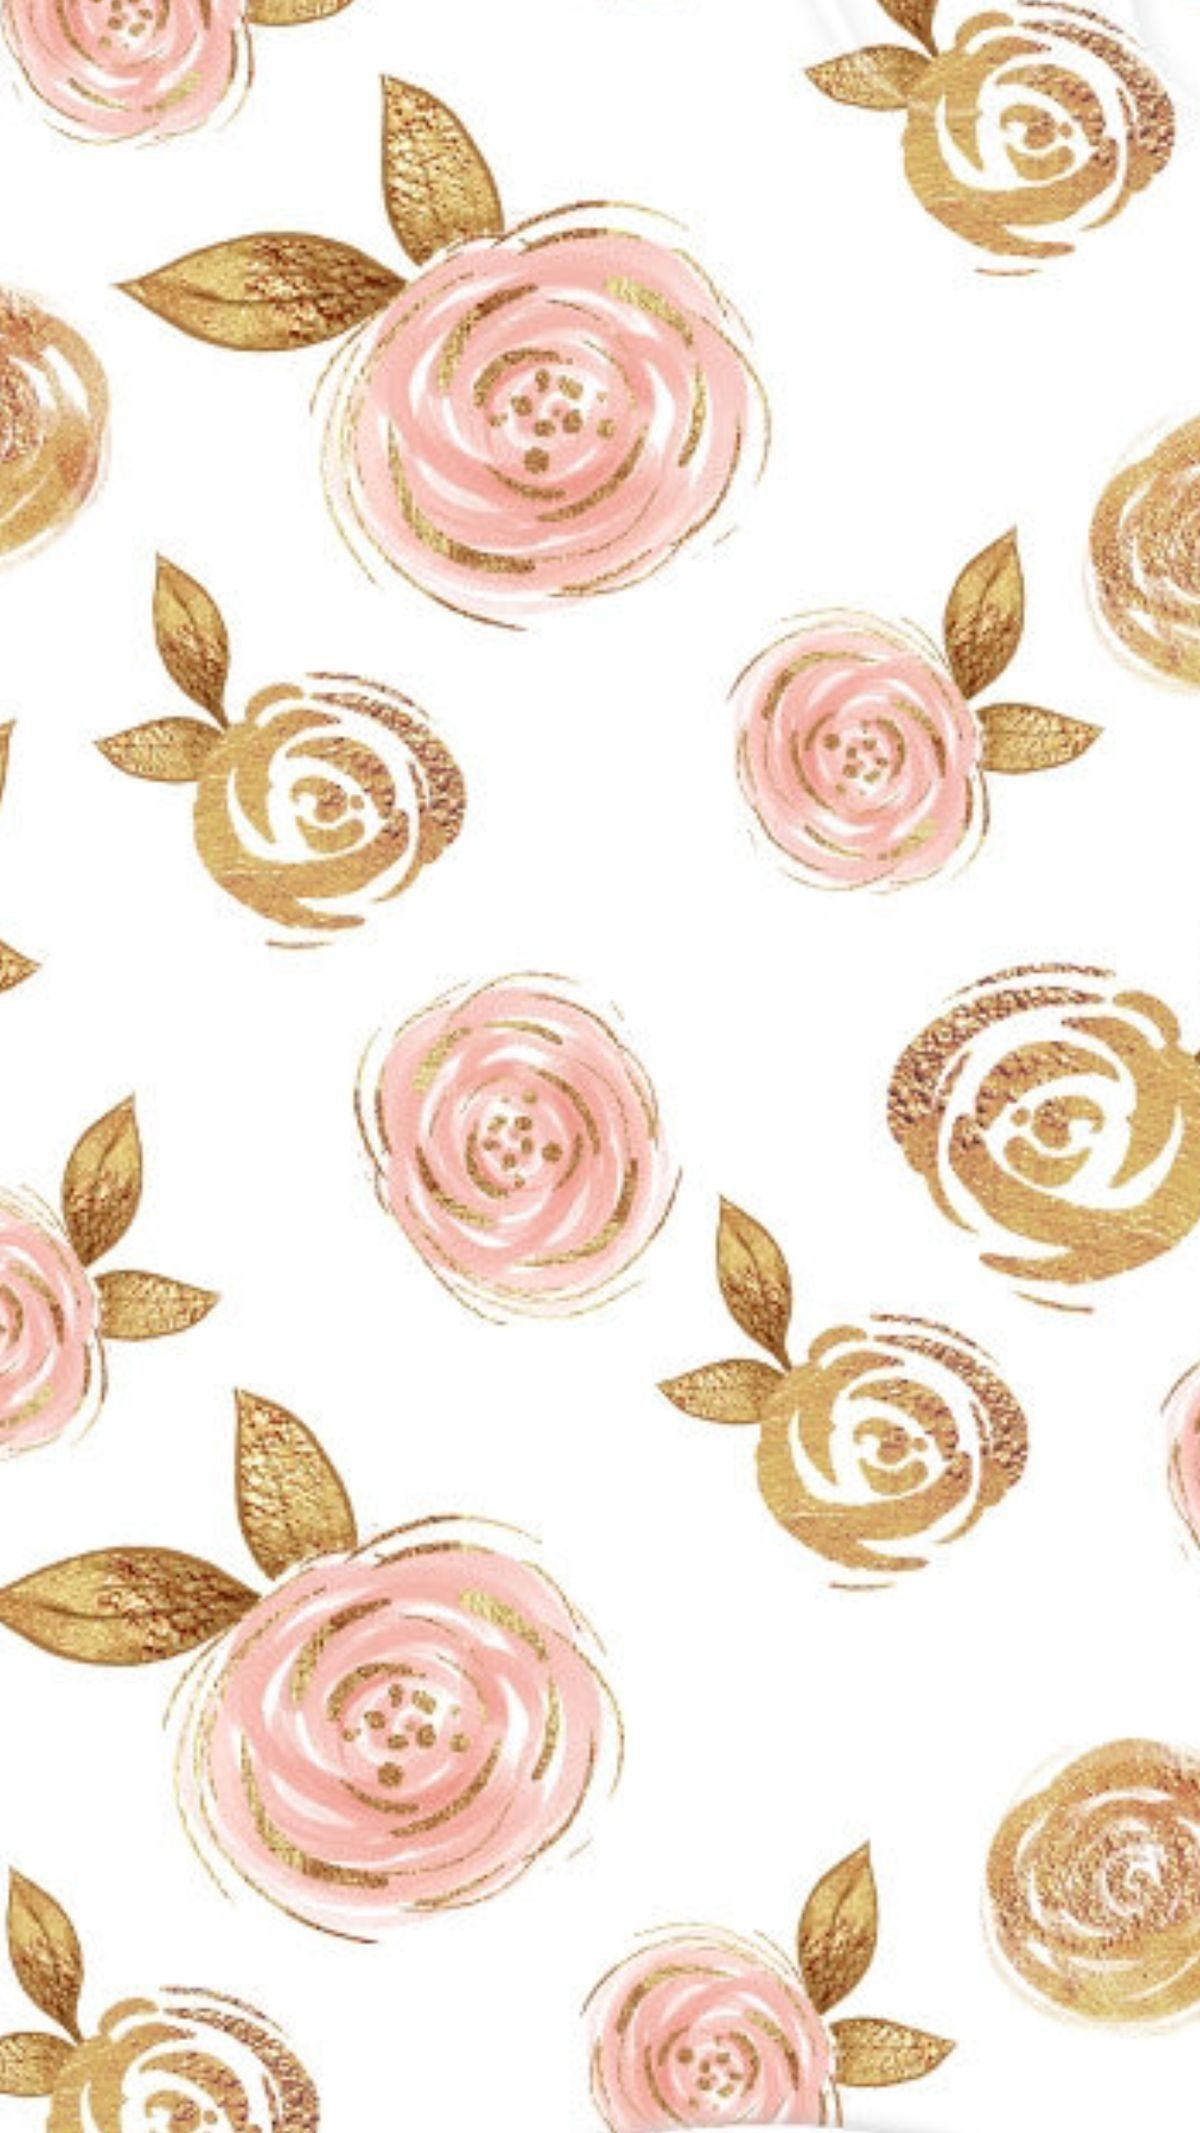 Rose Gold Wallpapers Posted By Michelle Thompson